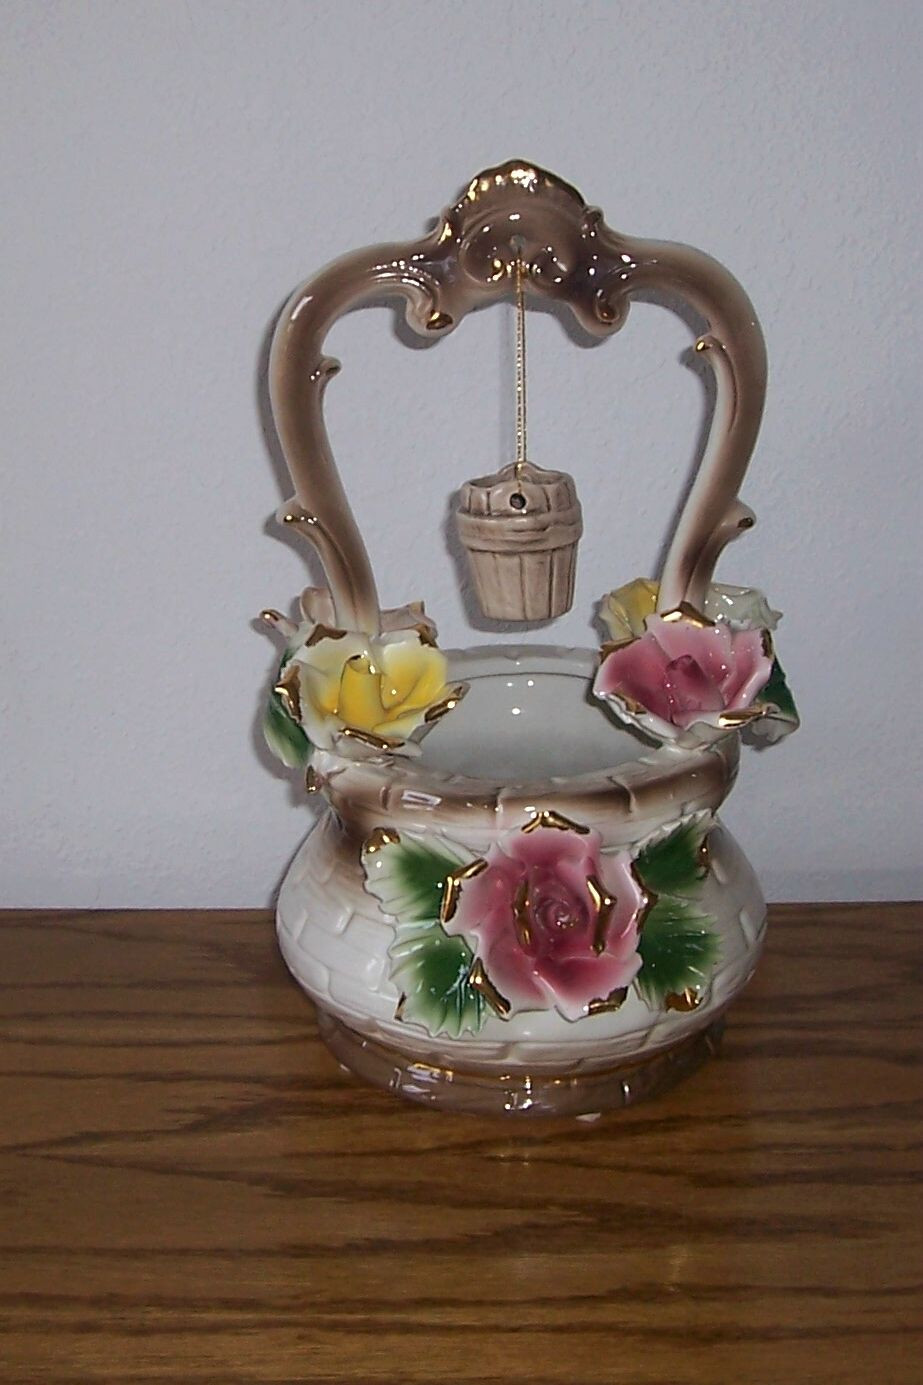 Vintage Capodimonte Vase Of I Bought This Capodimonte Wishing Well at An Antique Shop In Roswell Regarding I Bought This Capodimonte Wishing Well at An Antique Shop In Roswell Ga